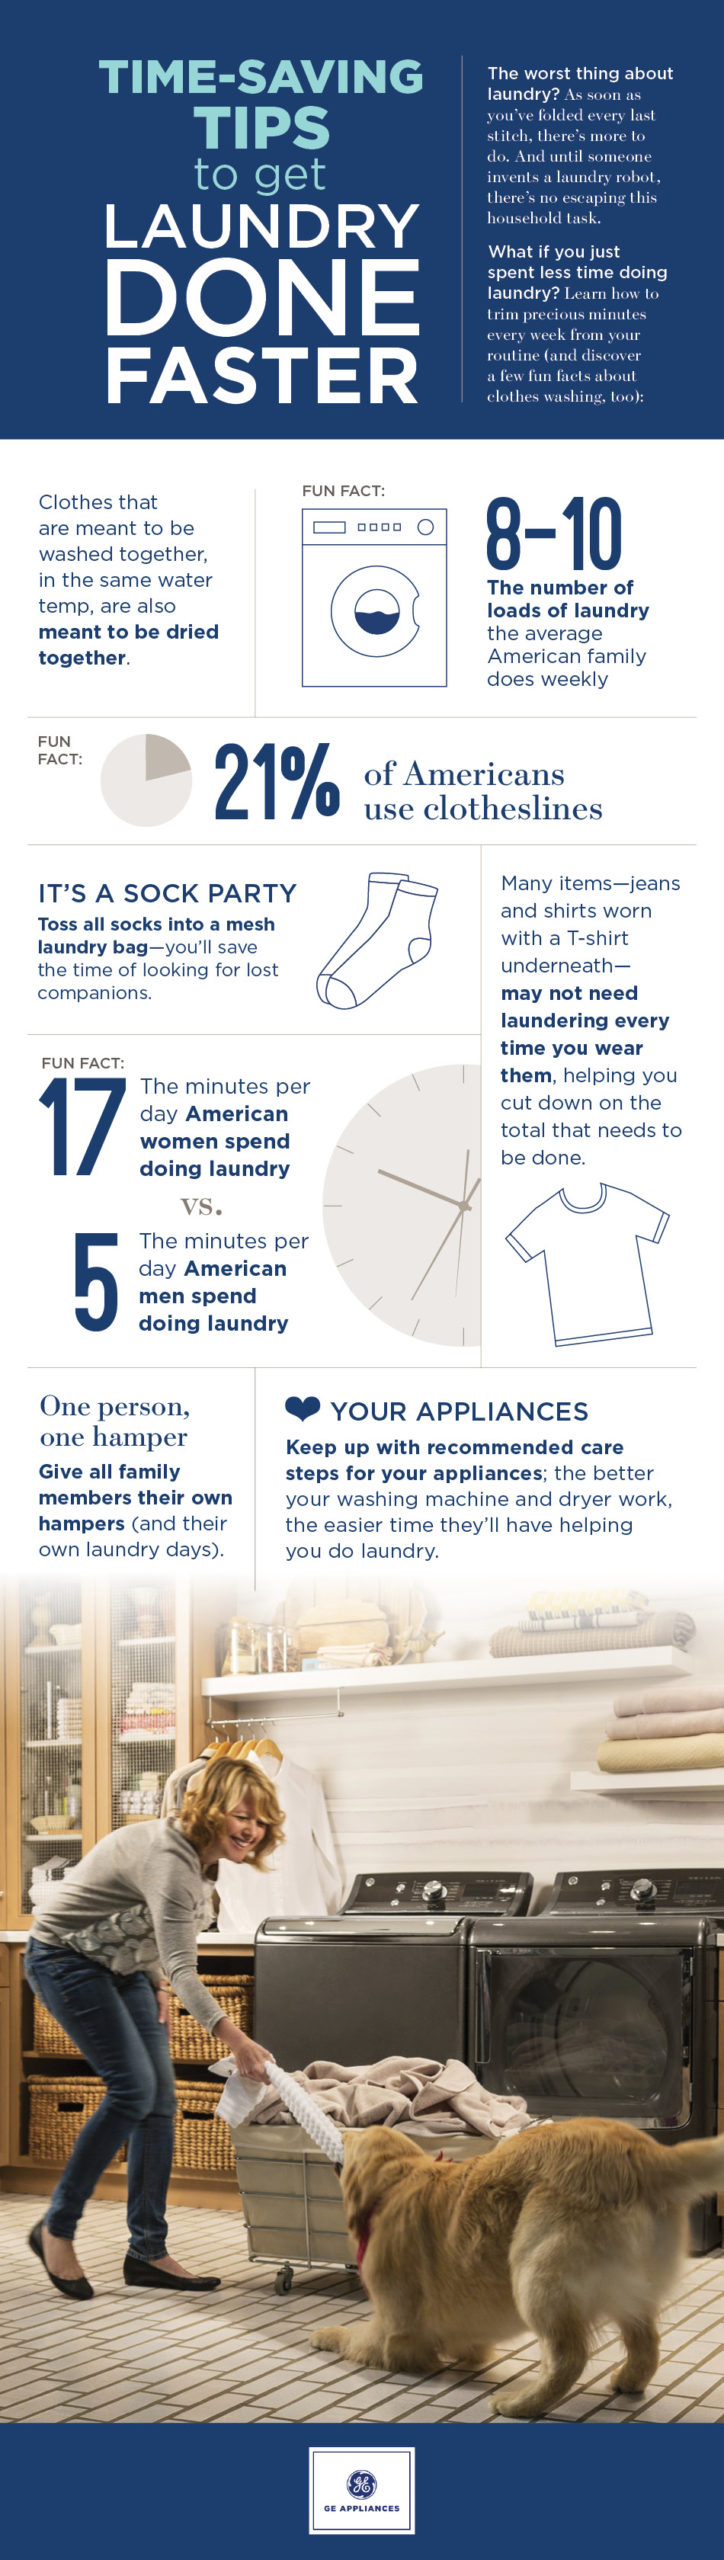 Time Saving And Fun Laundry Tips infographic